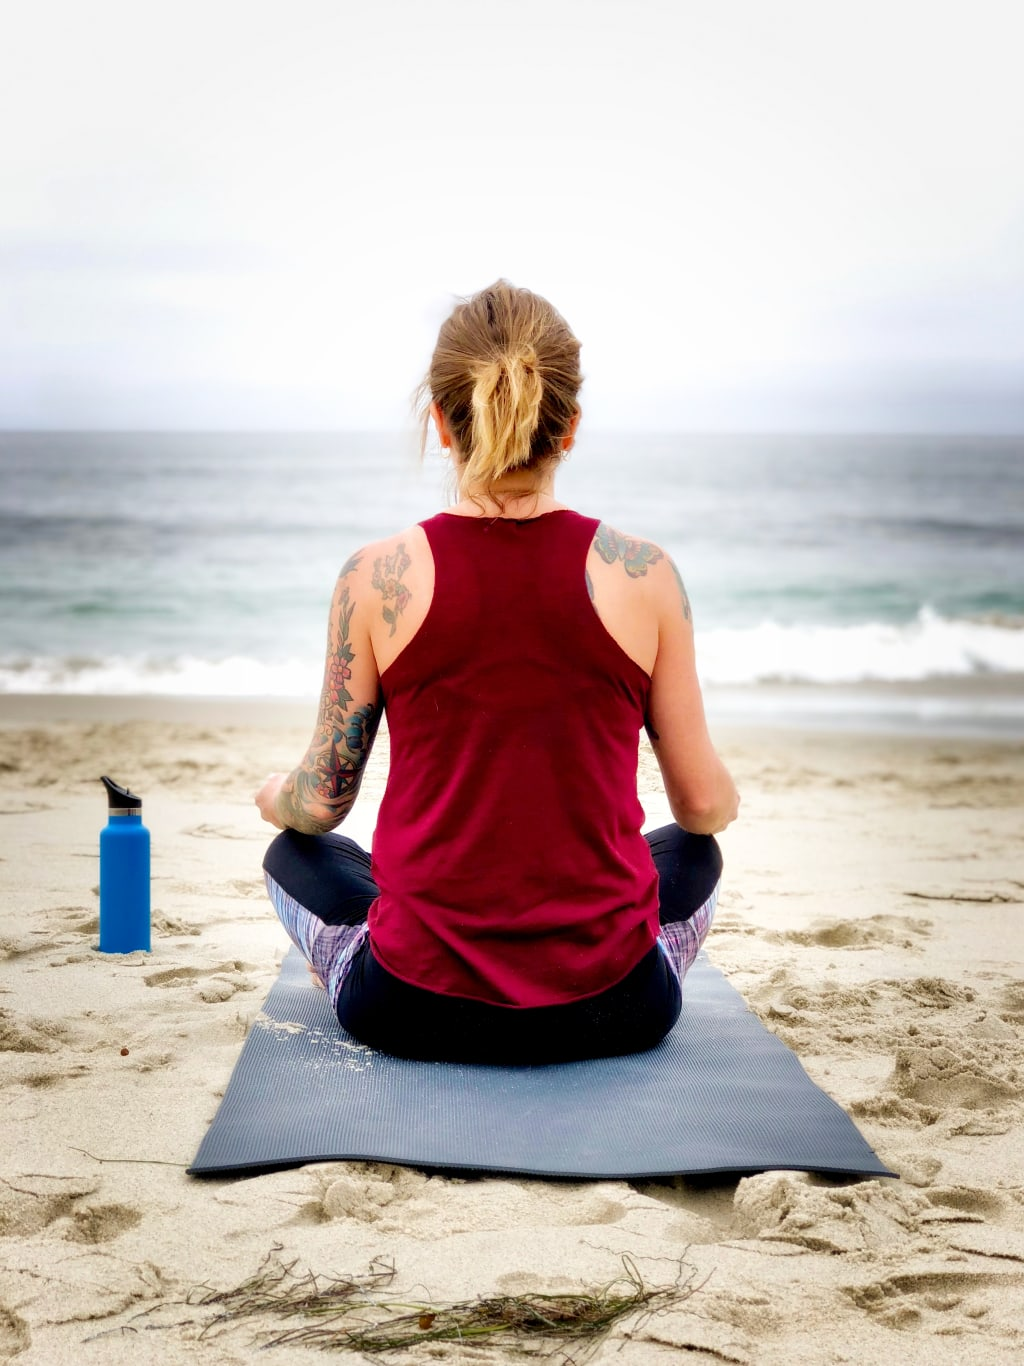 How Does Yoga Help My Anxiety and Depression?